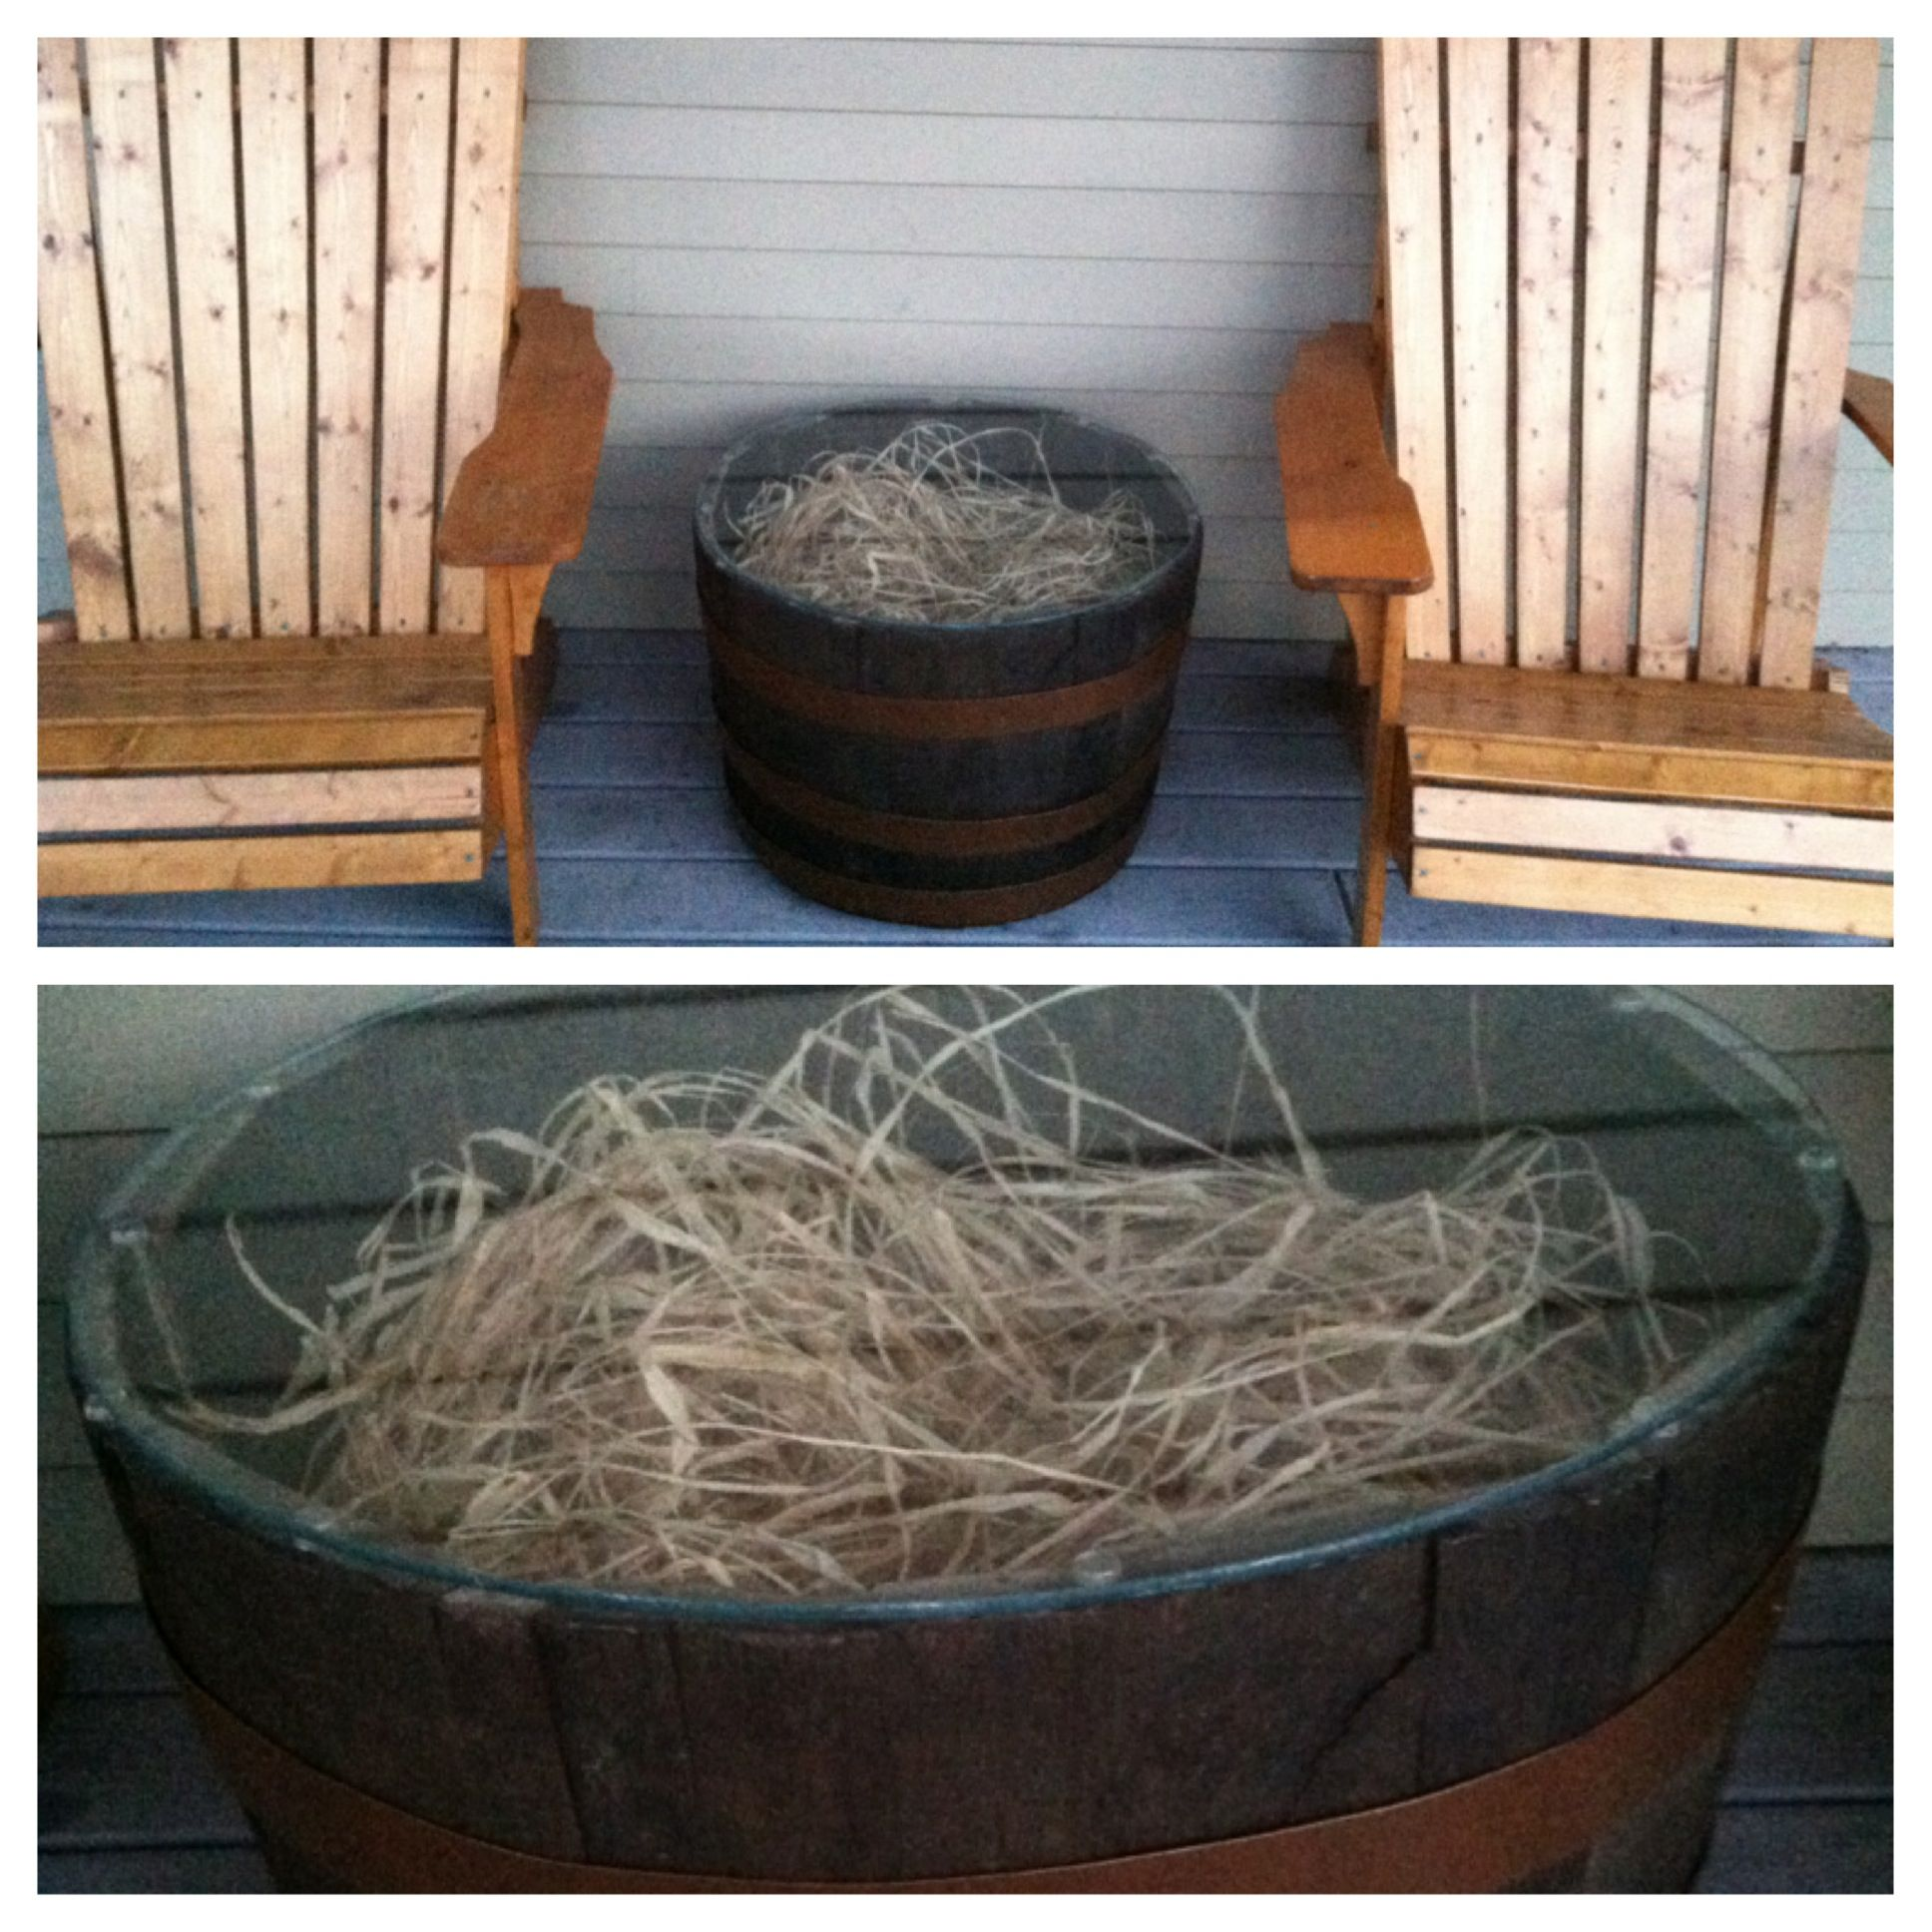 Whiskey barrel planter as end table. $30 planter from Home Depot ...